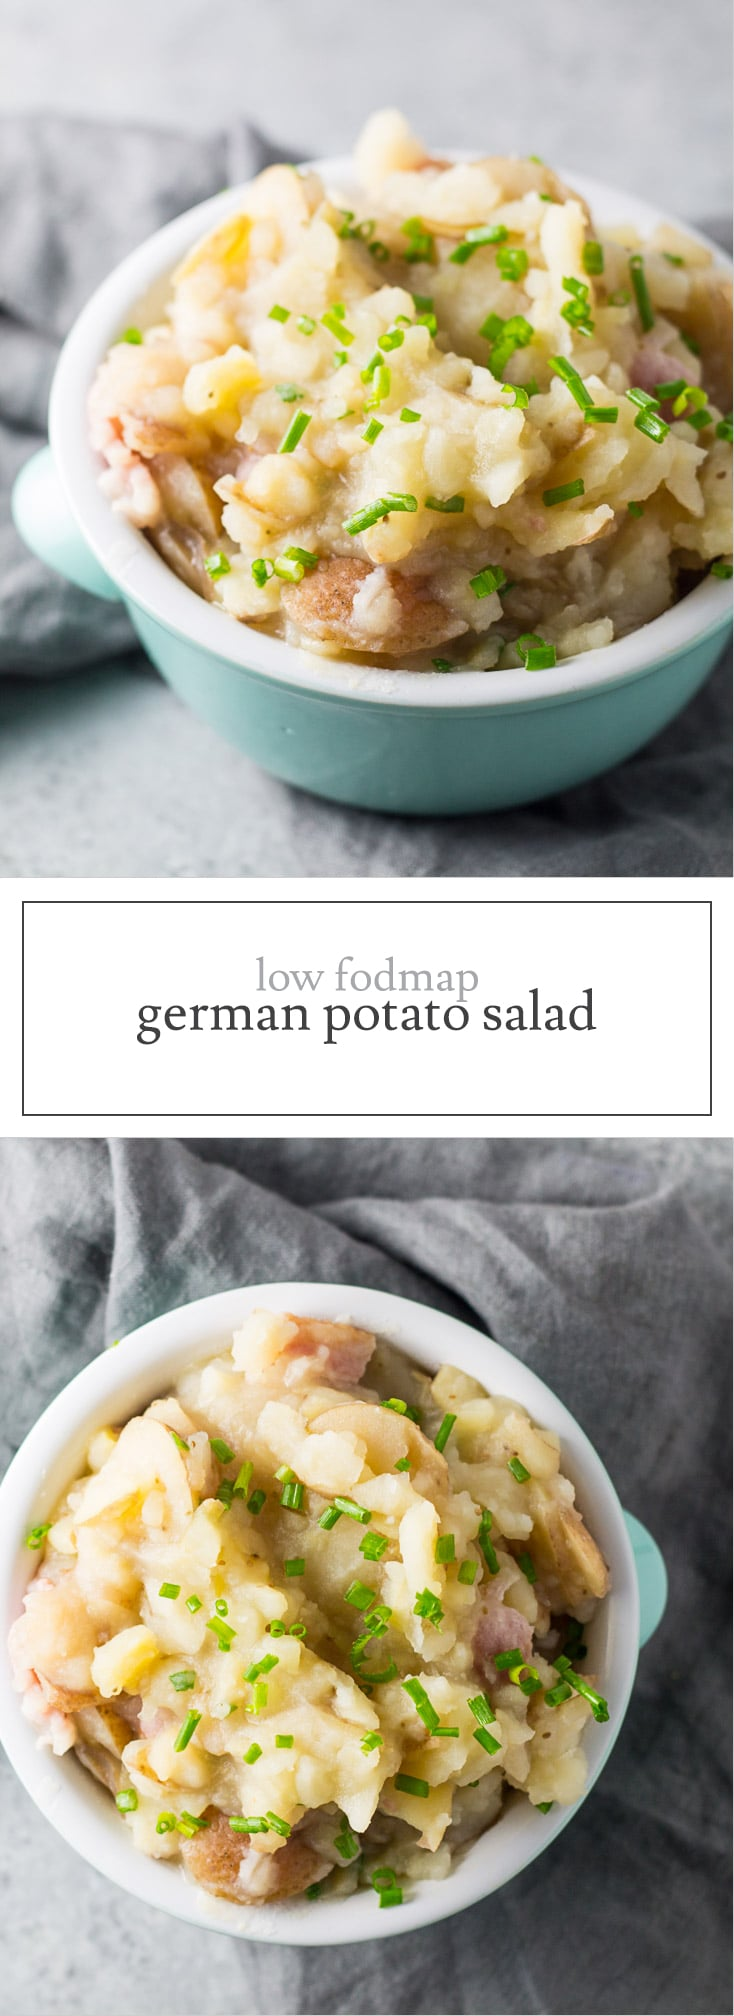 Sweet, sour and served warm, this Low FODMAP German Potato Salad is a hearty, slow cooker side dish that's perfect for the cold weather months.